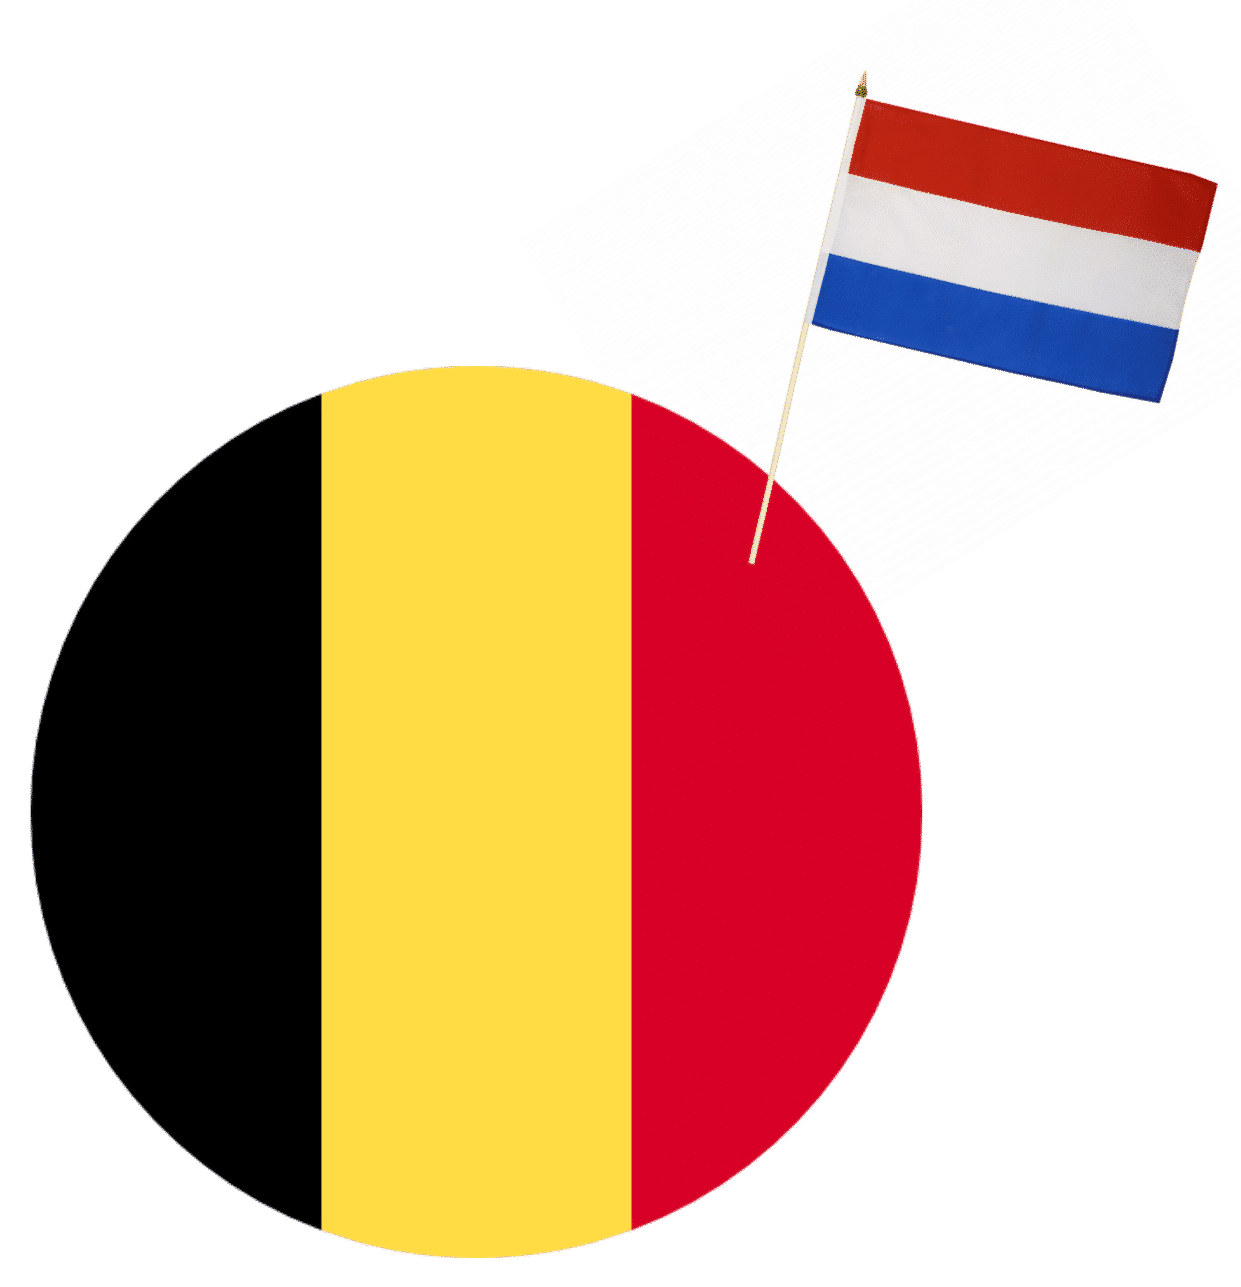 belge-flag-nl-clint-scarlett-memory-improvement-games-online-android-playstore-mind-games-exercises-android-brain-teasers-for-adults-seniors-with-dementia-best-training-apps